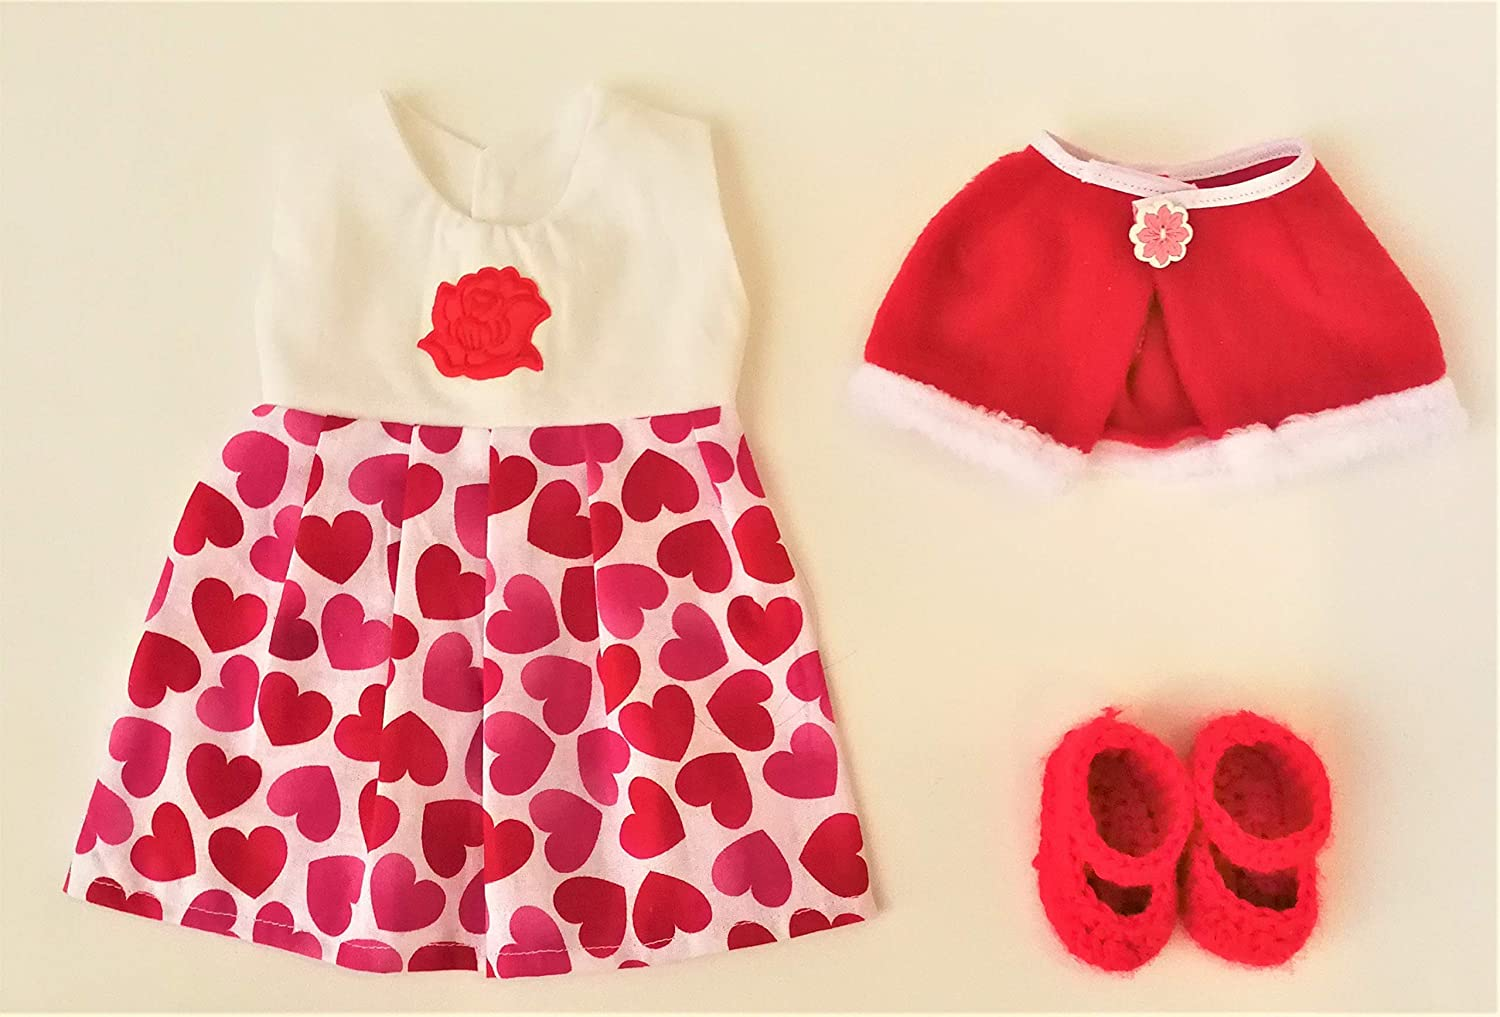 Heart Rose Skirt+Shawl Sets With Option Shoes Doll Dress My Dolls Life Granddaughter Daughter Niece Quality Birthday Gifts For Little Girls 18 Inch American Girl Doll Clothes And Accessories